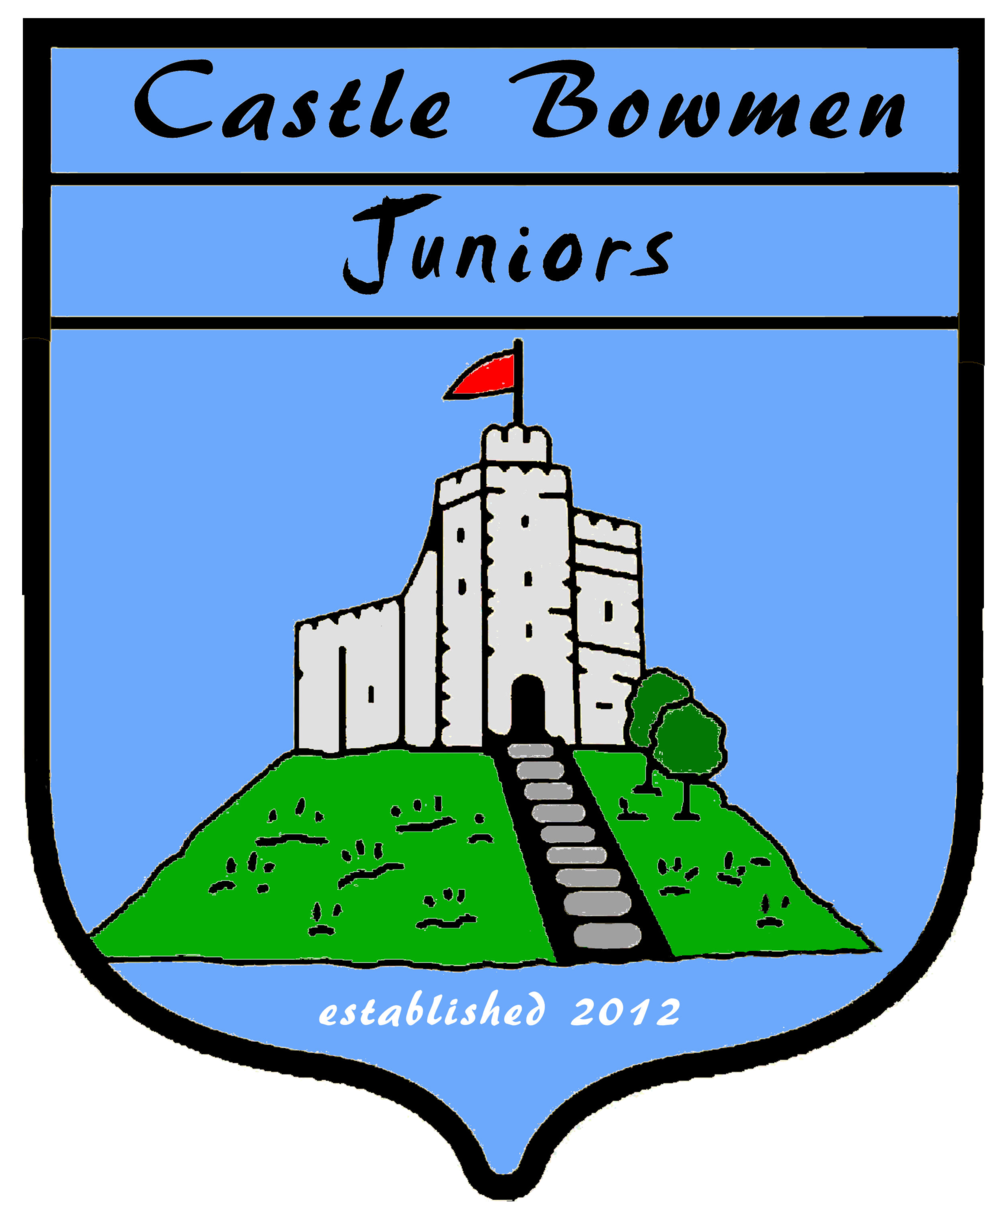 Palace clipart castle welsh. Junior club bowmen news